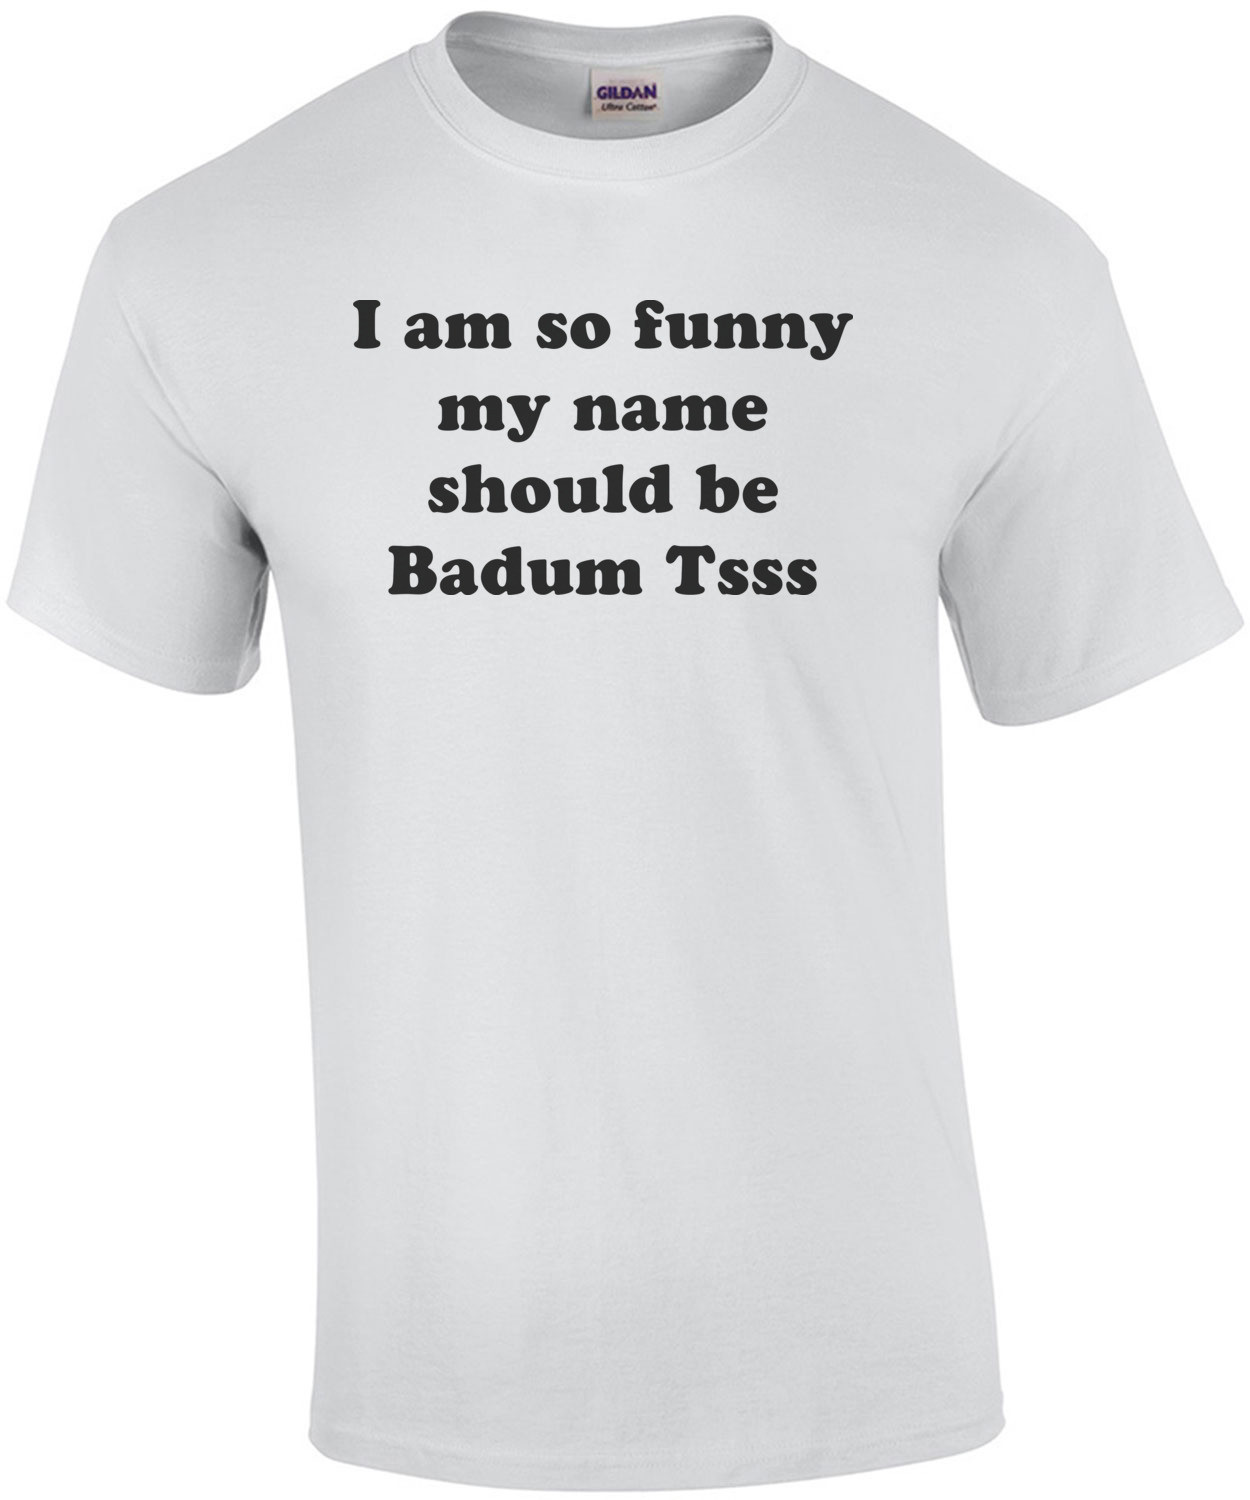 I am so hilarious my name should be Badum Tsss Shirt